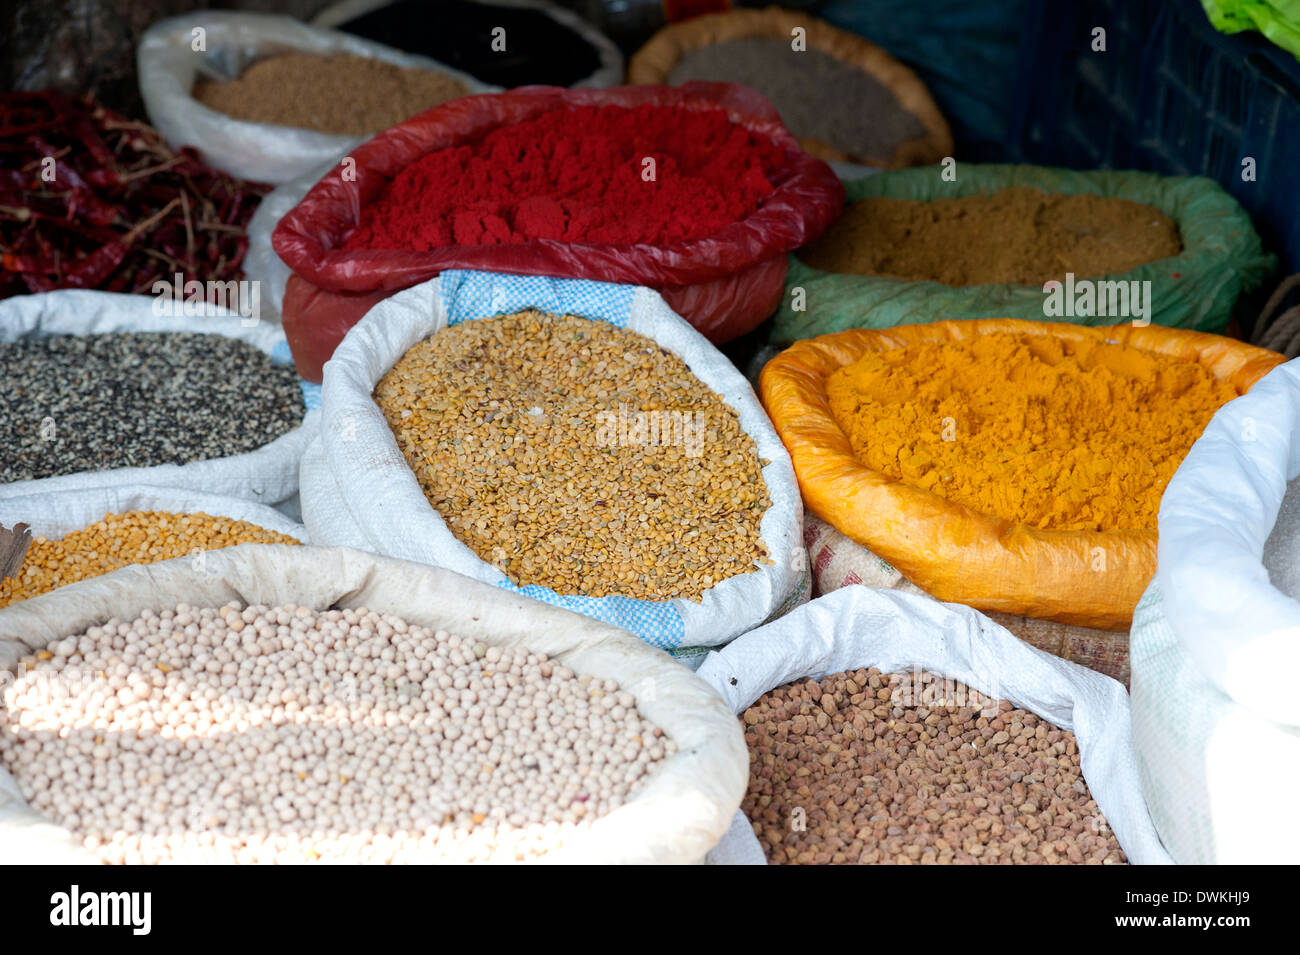 Pulses and spices in sacks for sale in Tizit village weekly local market, Nagaland, India, Asia - Stock Image